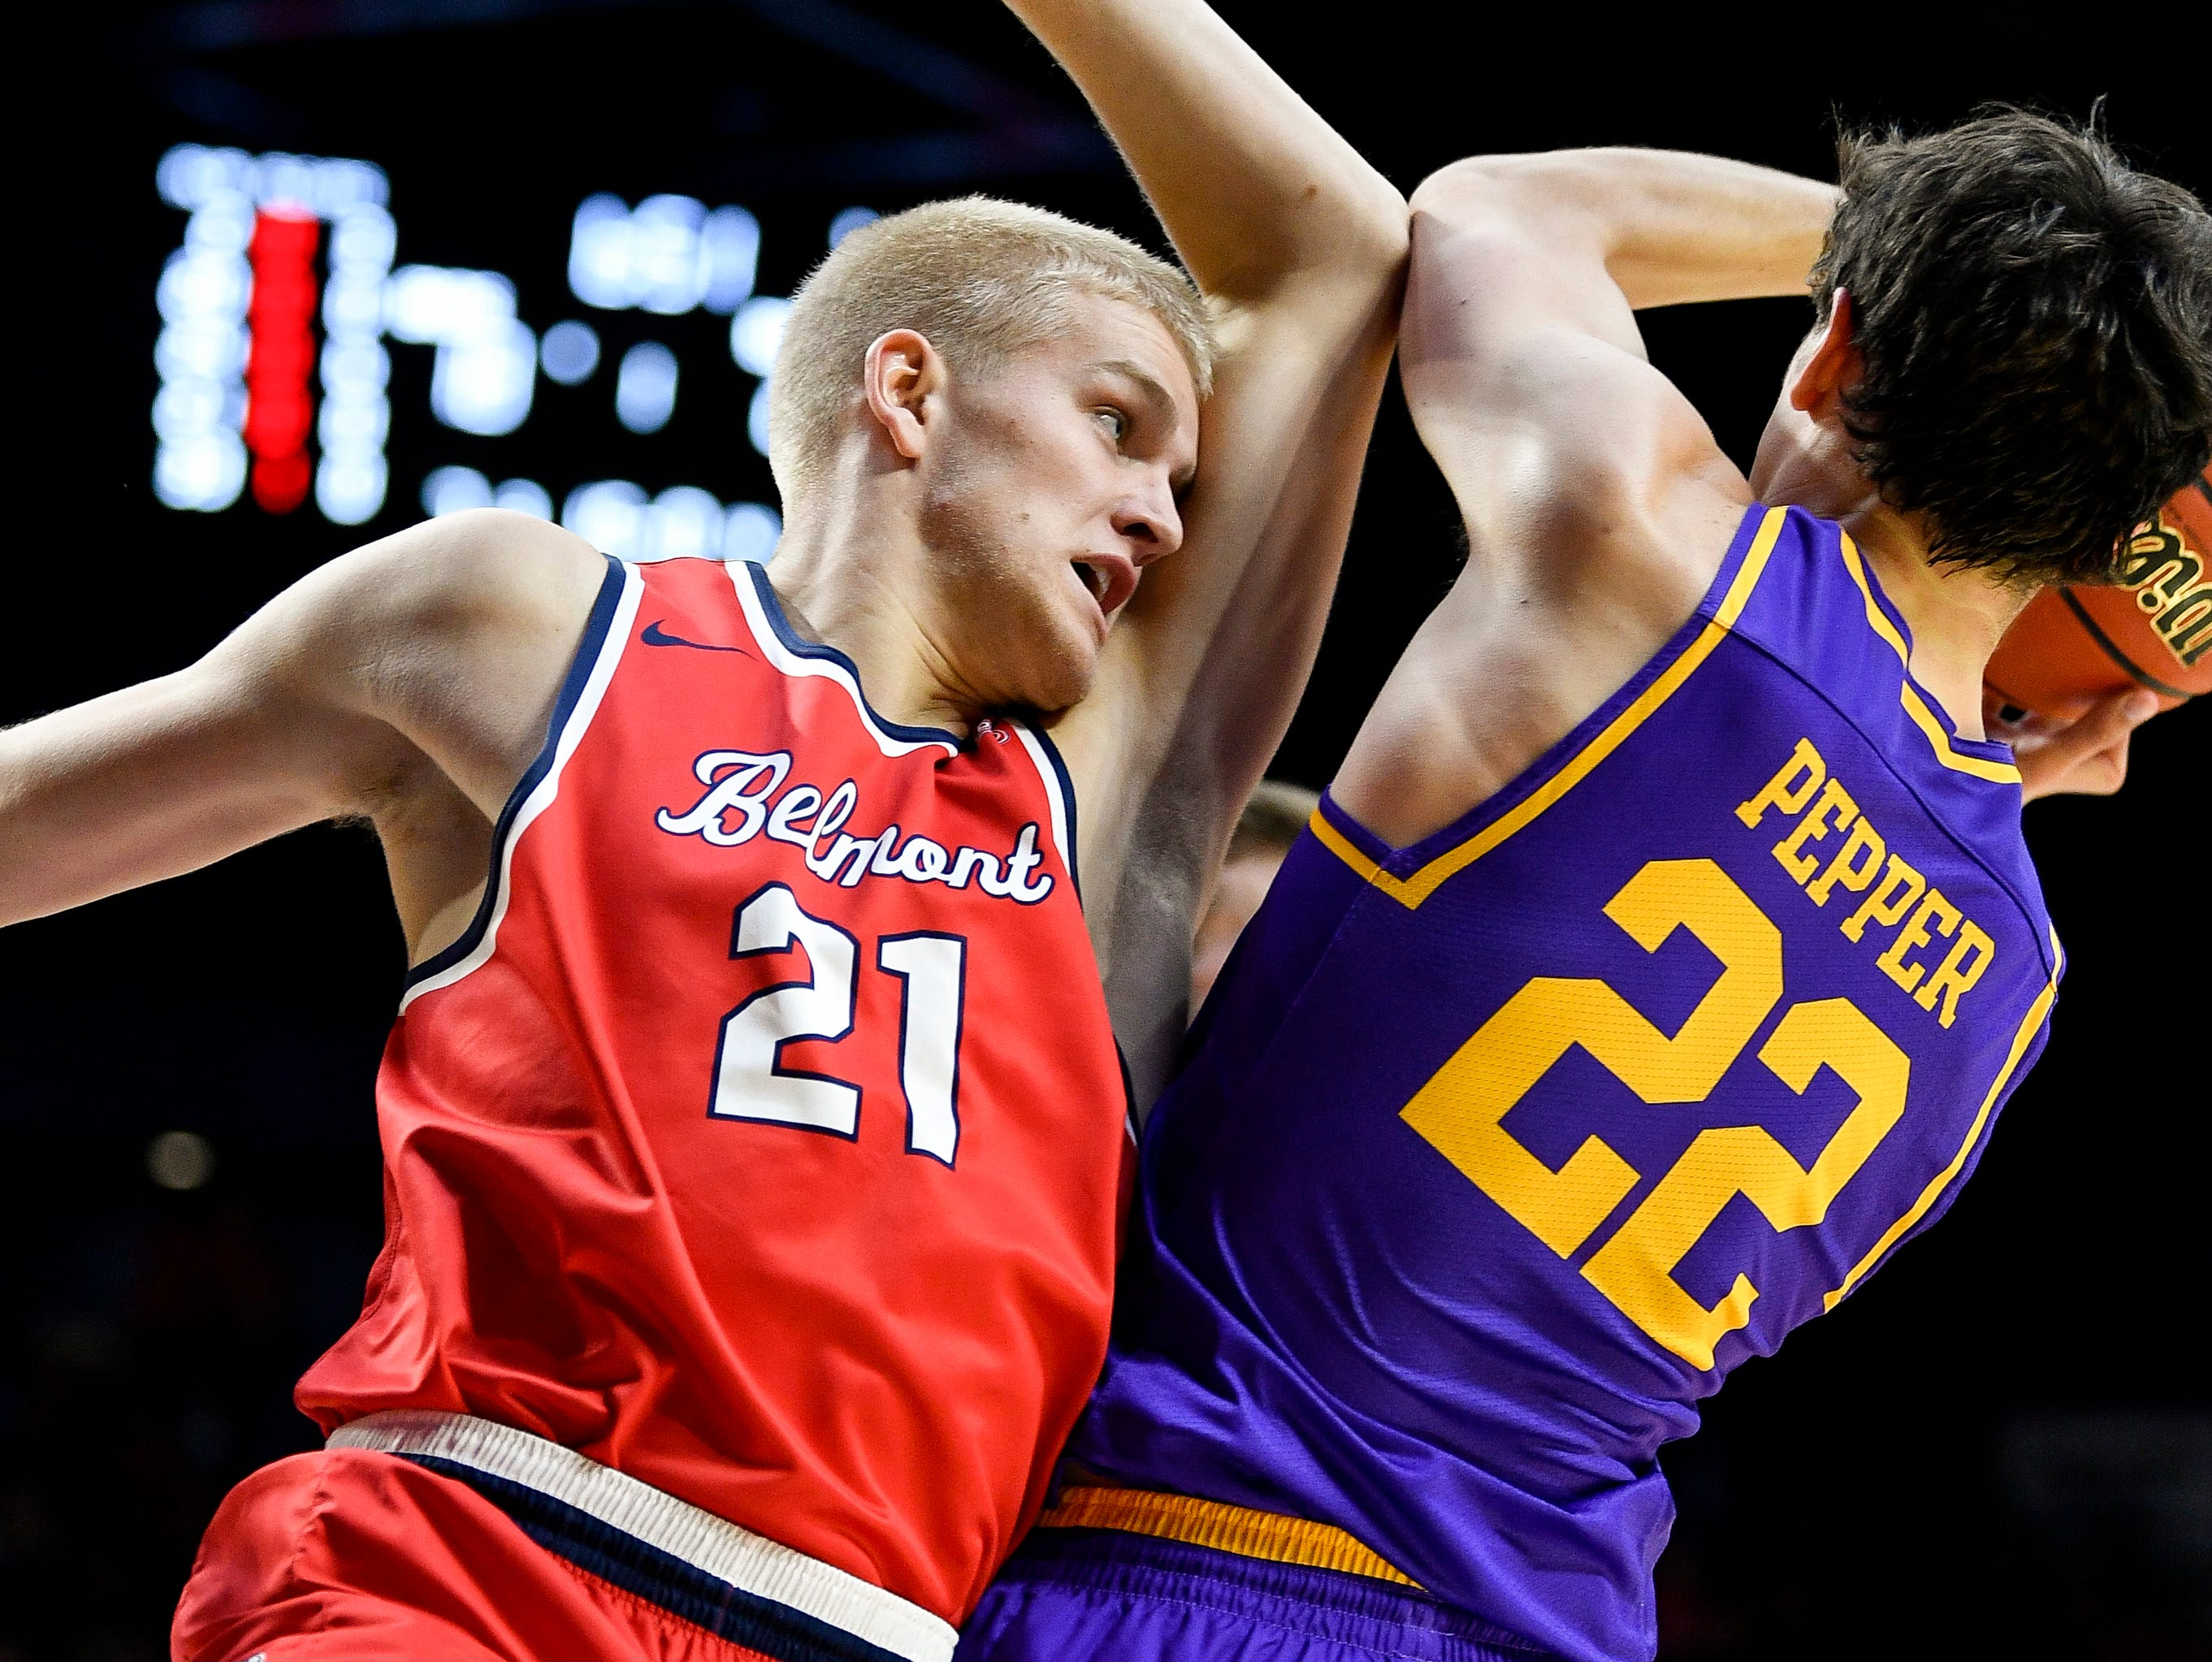 Belmont forward Derek Sabin (21) battles Lipscomb forward Eli Pepper (22) during the first half at the Curb Event Center in Nashville, Tenn., Tuesday, Dec. 4, 2018.